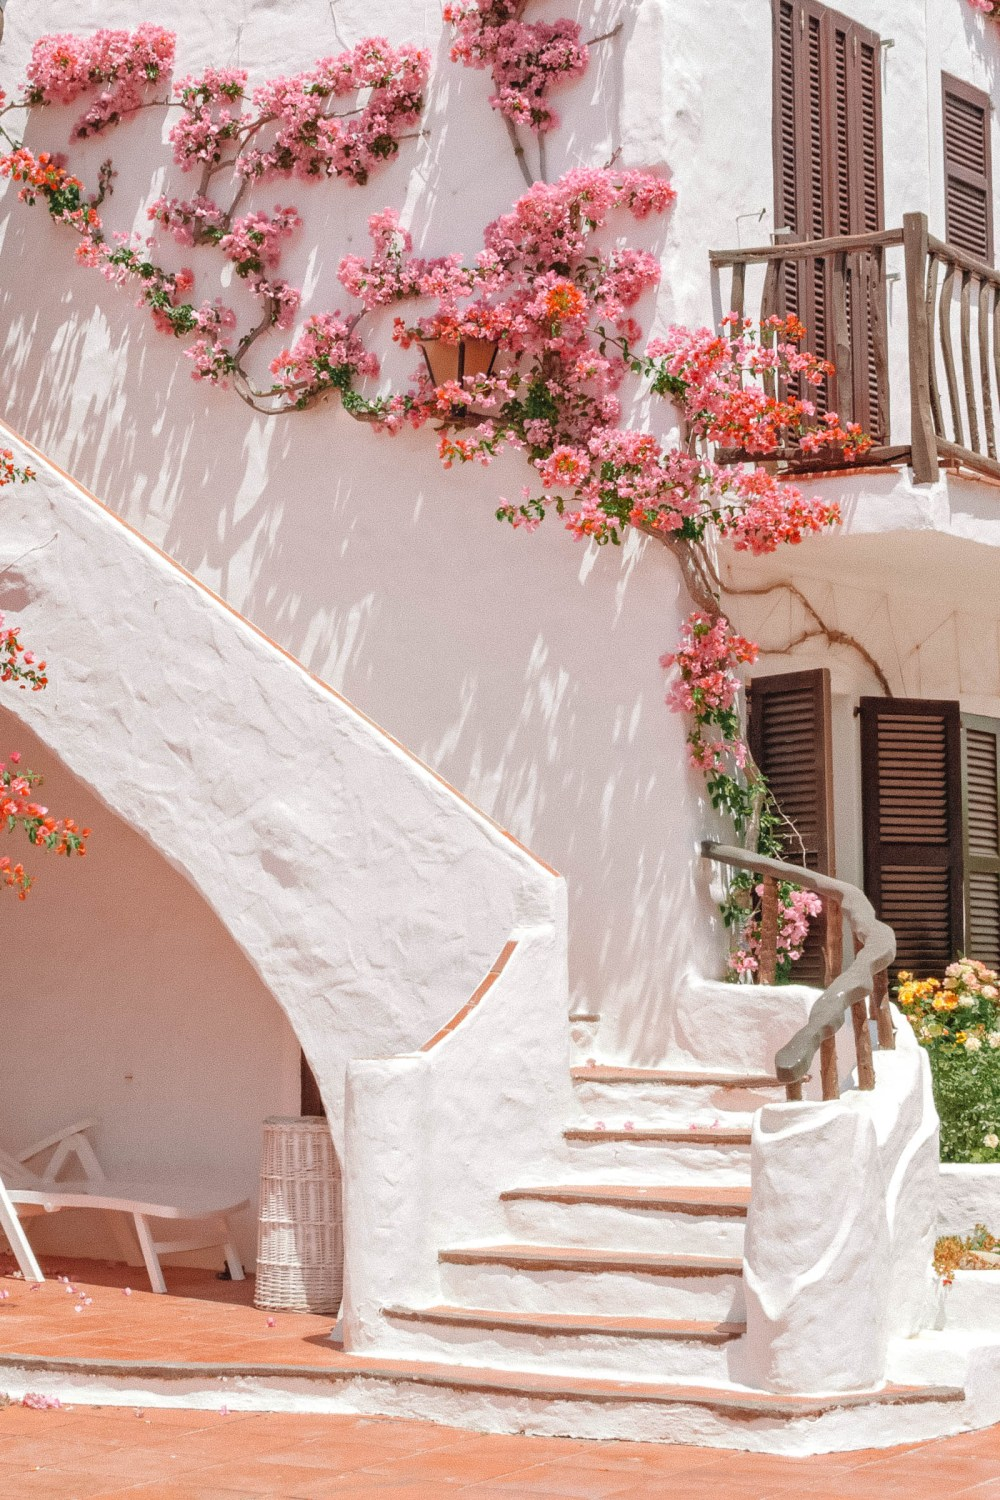 Best Things To Do In Menorca (4)